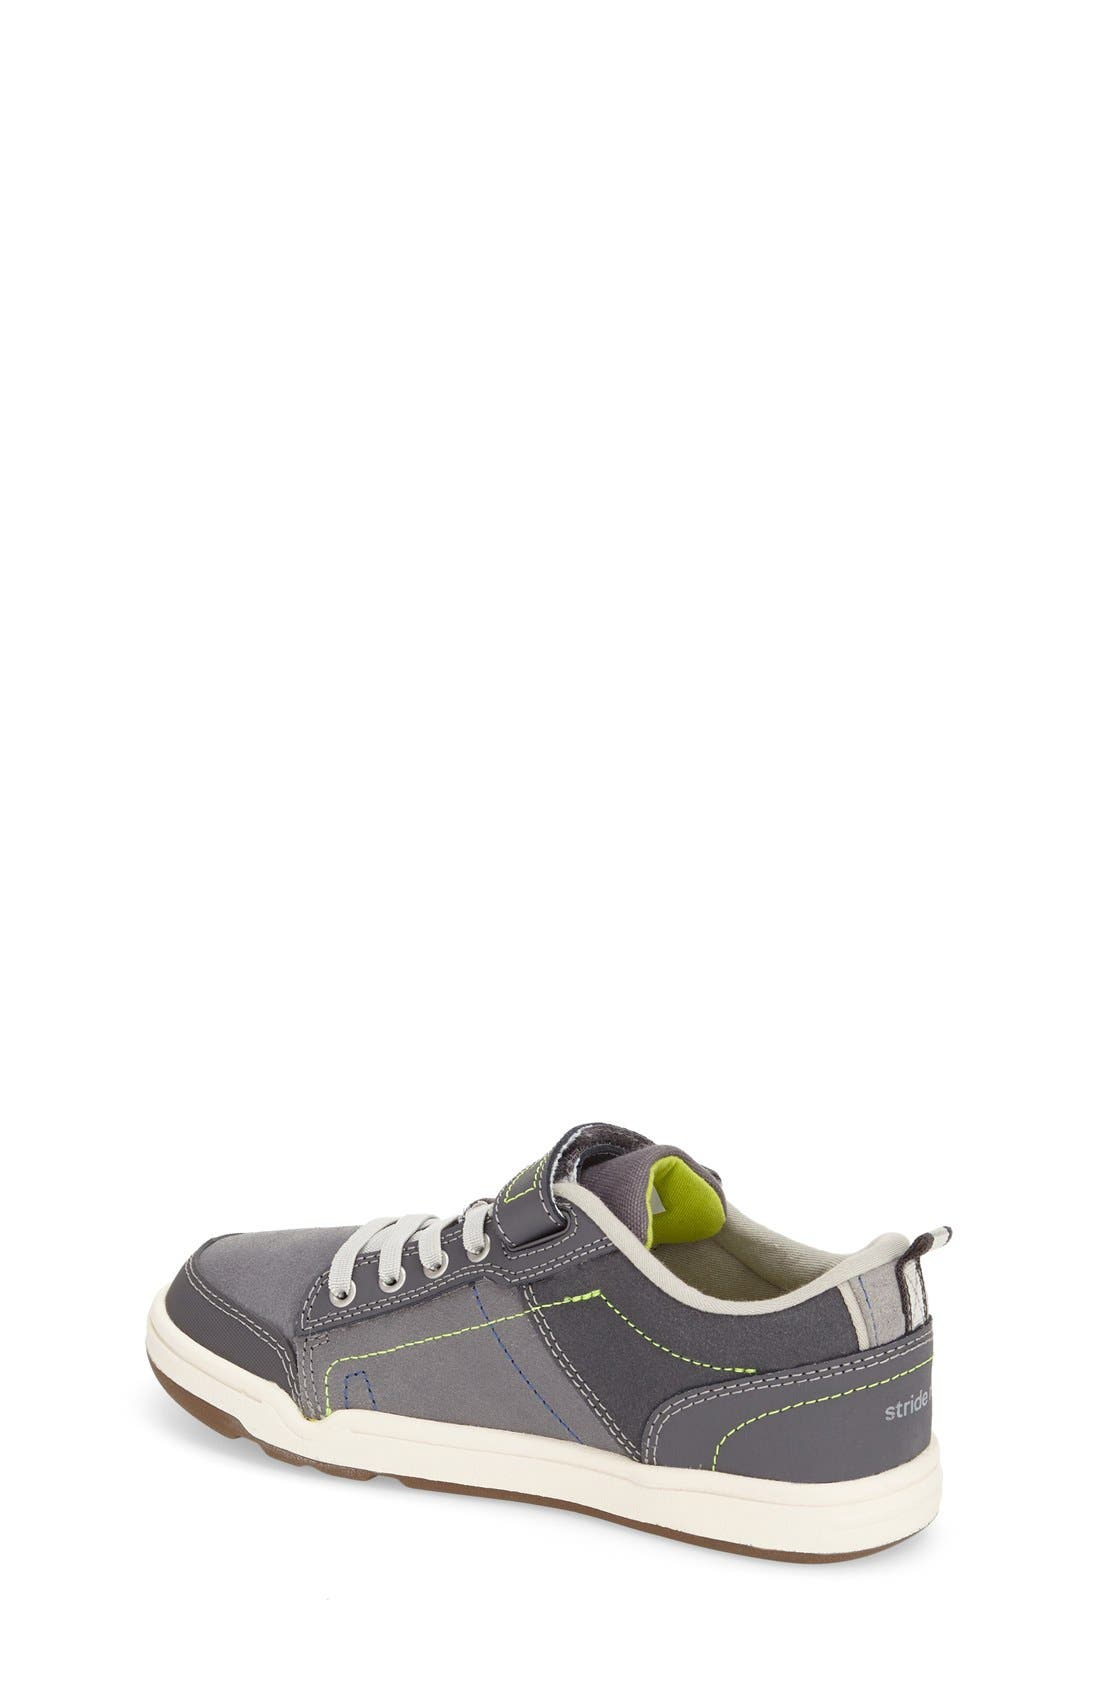 'Made 2 Play<sup>®</sup> Caleb' Sneaker,                             Alternate thumbnail 2, color,                             Grey